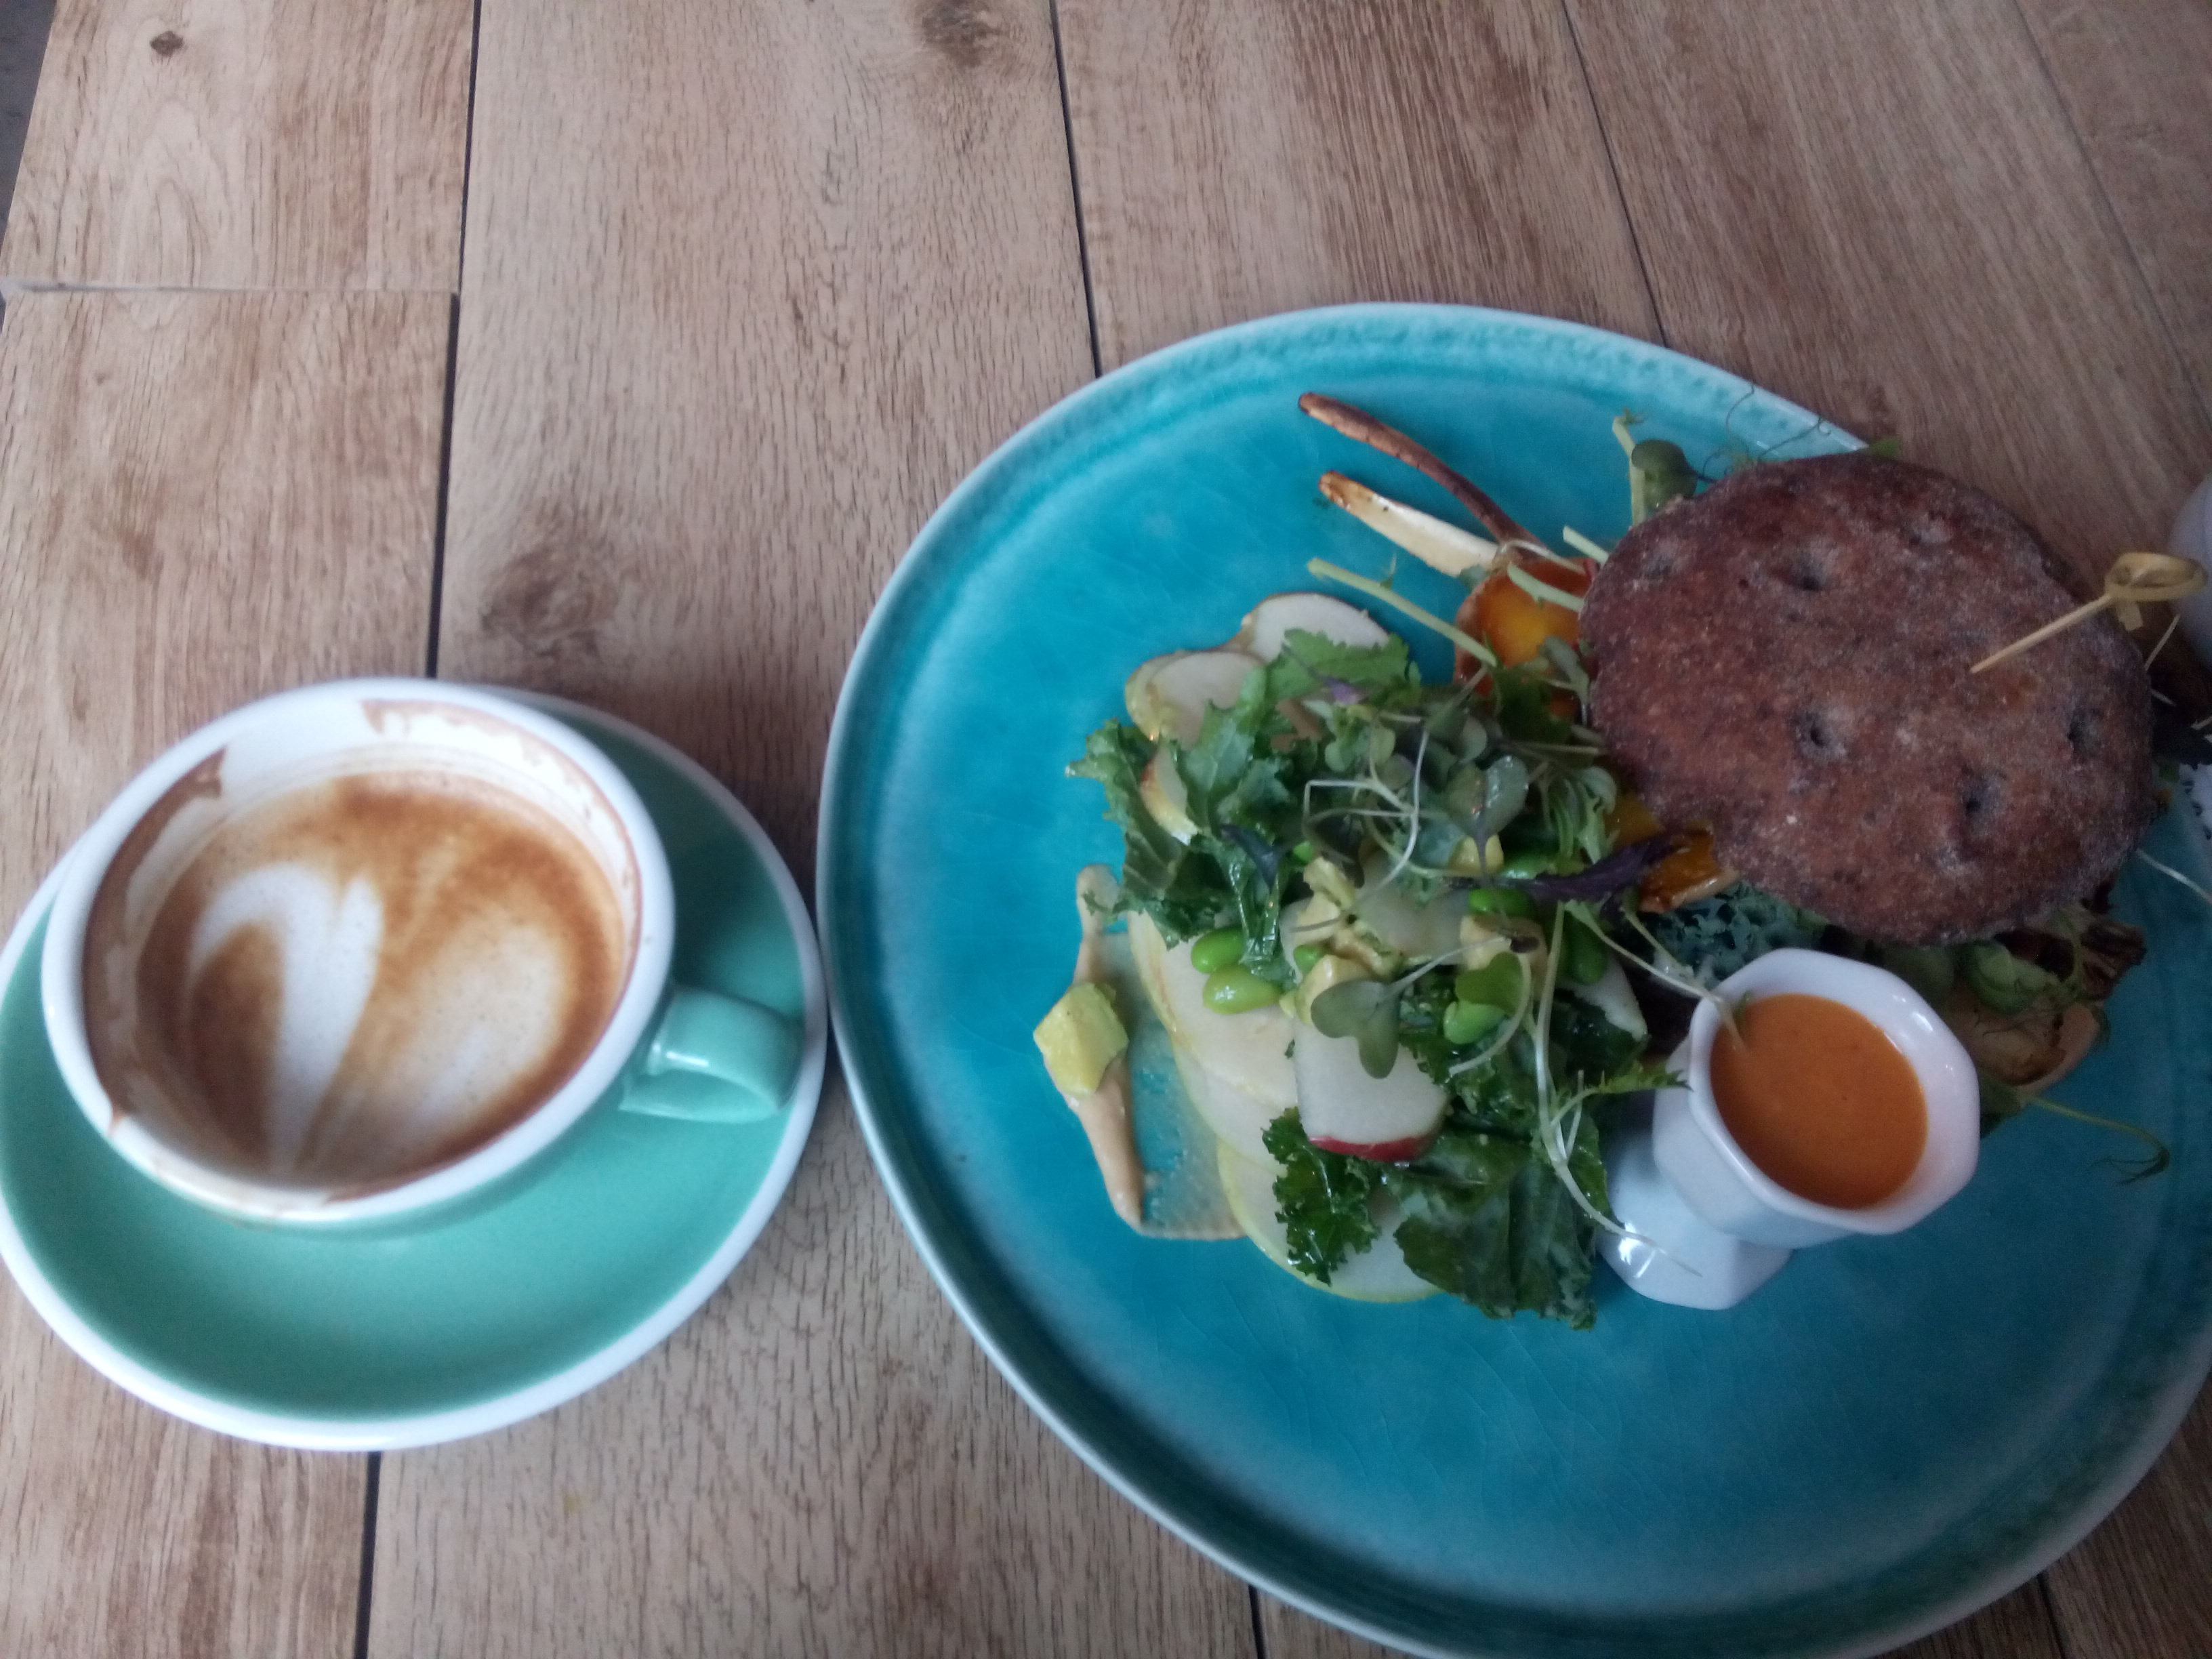 A green cup and saucer with a foamy coffee drink beside a blue plate with a pile of salad beside a burger bun and a pot of orange sauce